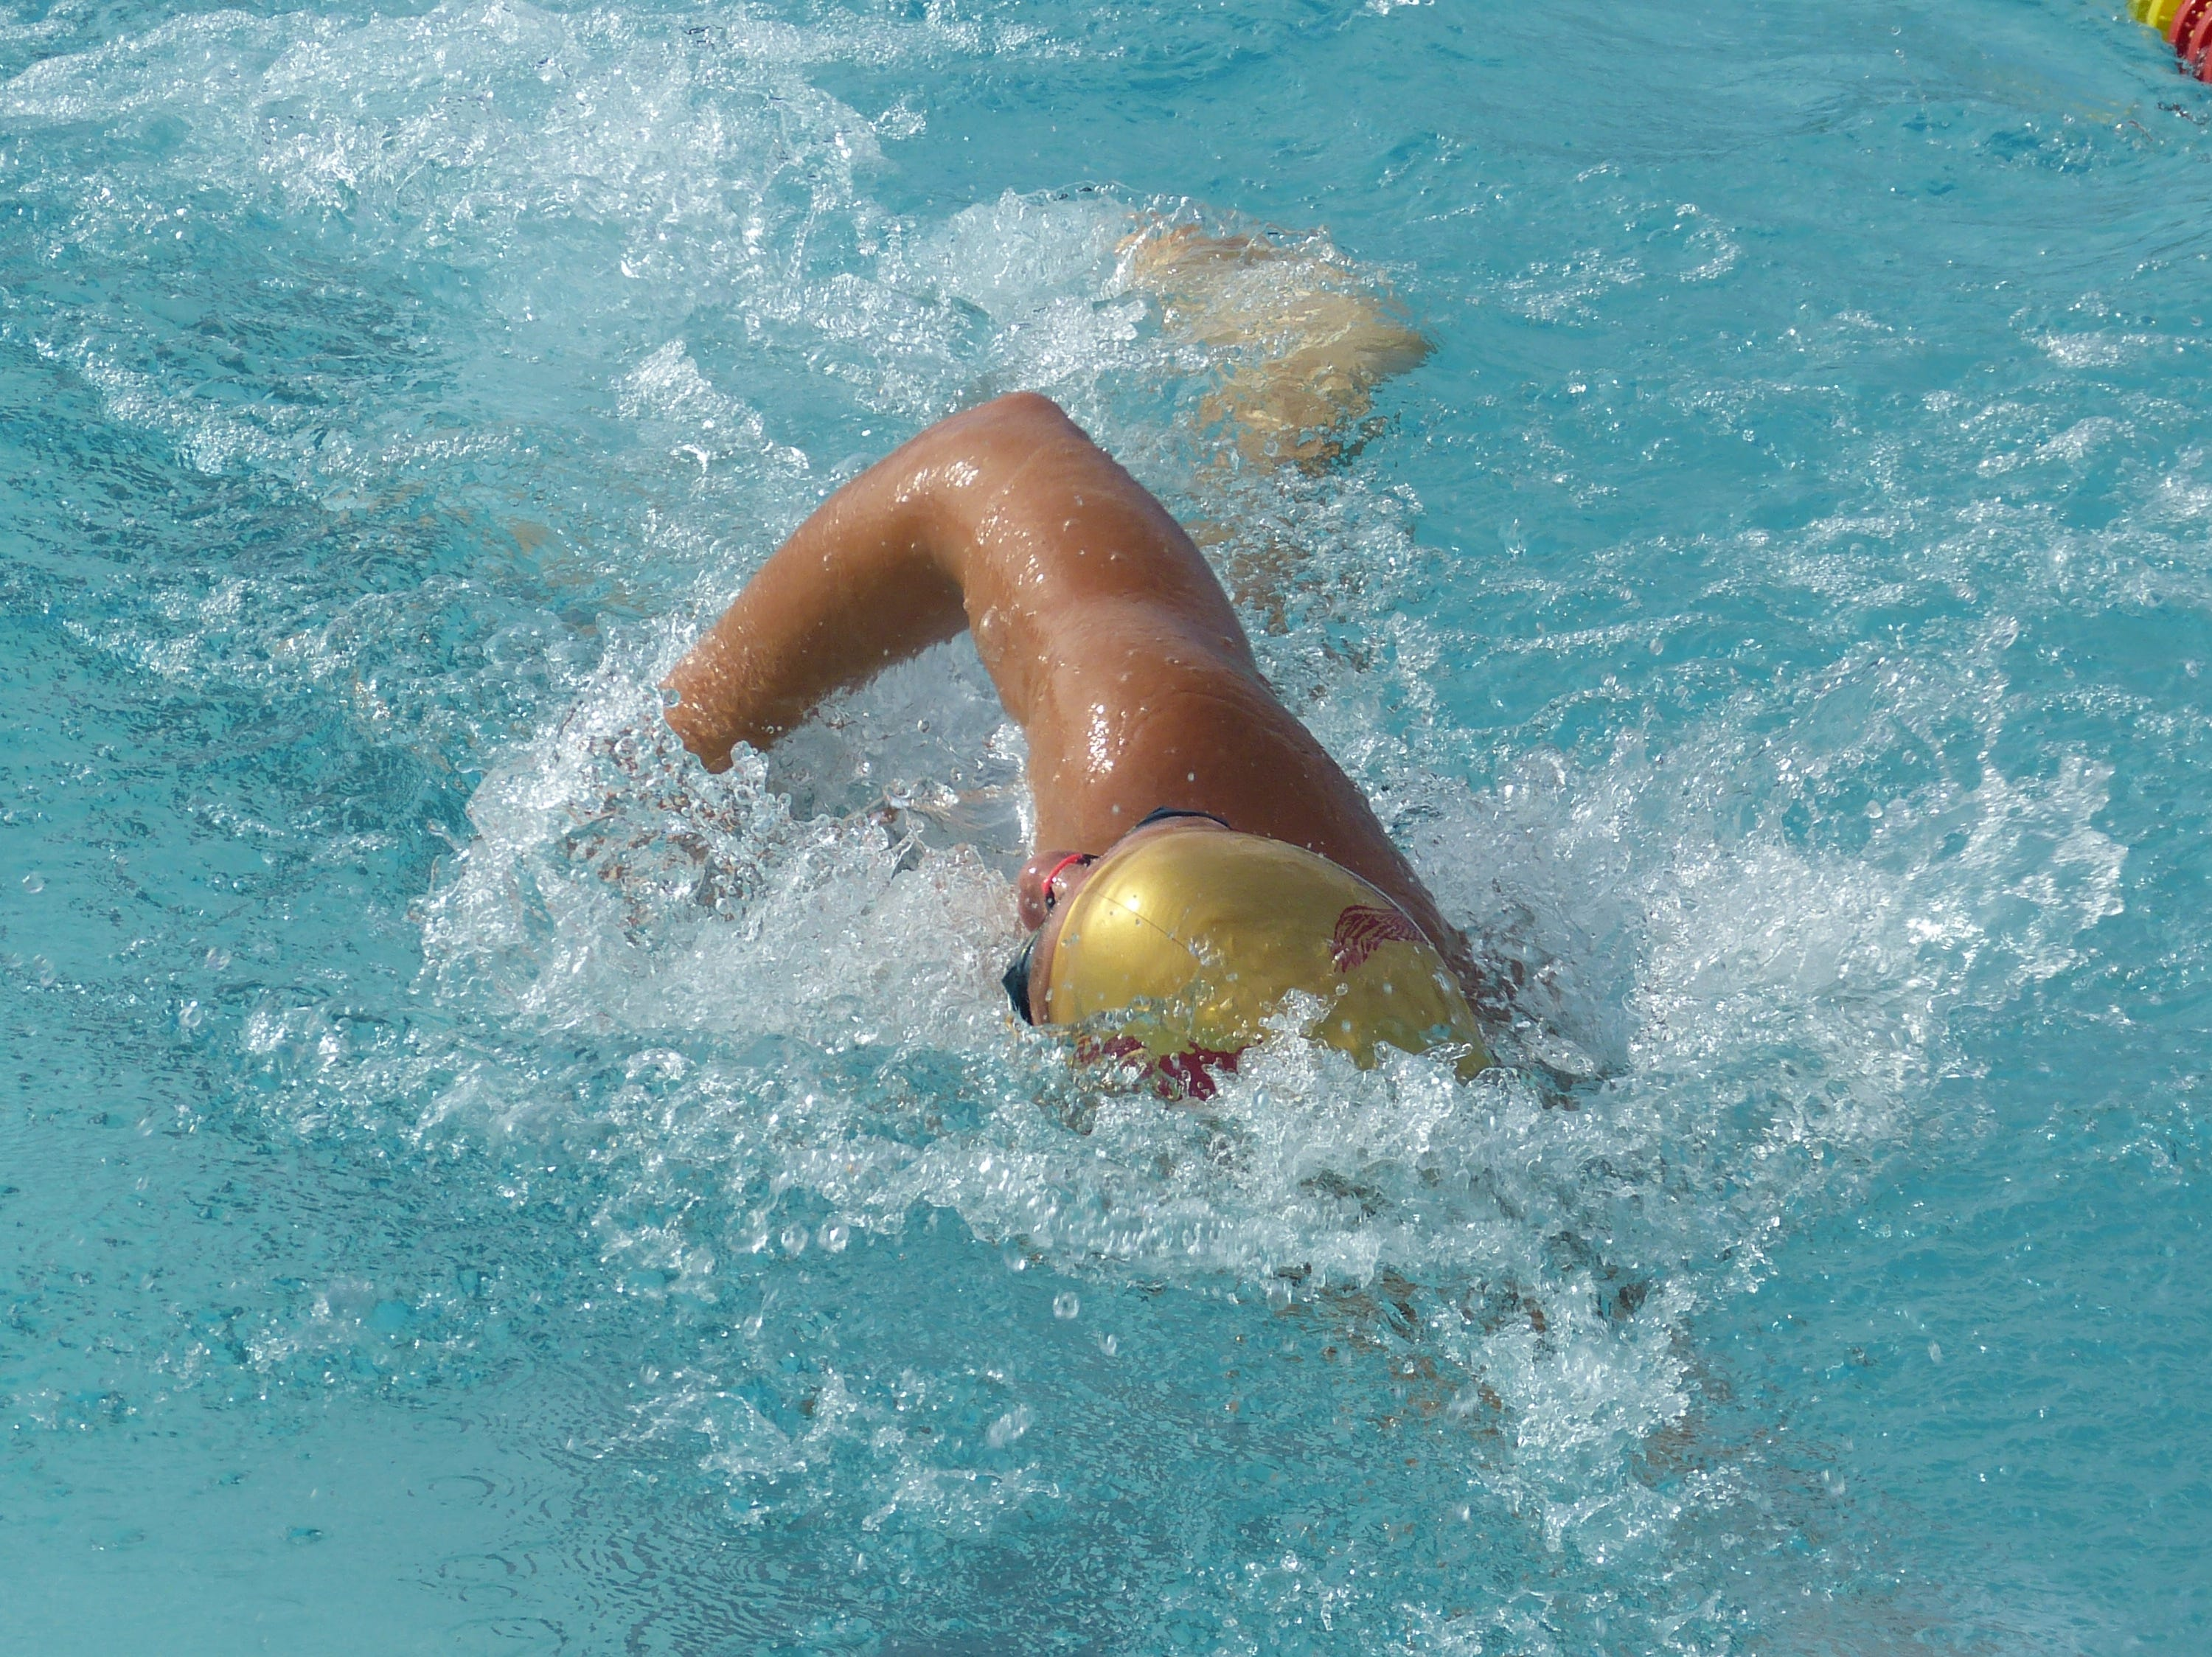 Anthony Rogers of West Valley races in the 100-yard freestyle Wednesday at the NSCIF trials for Division 2 schools at West Valley High School on Oct. 24, 2018.